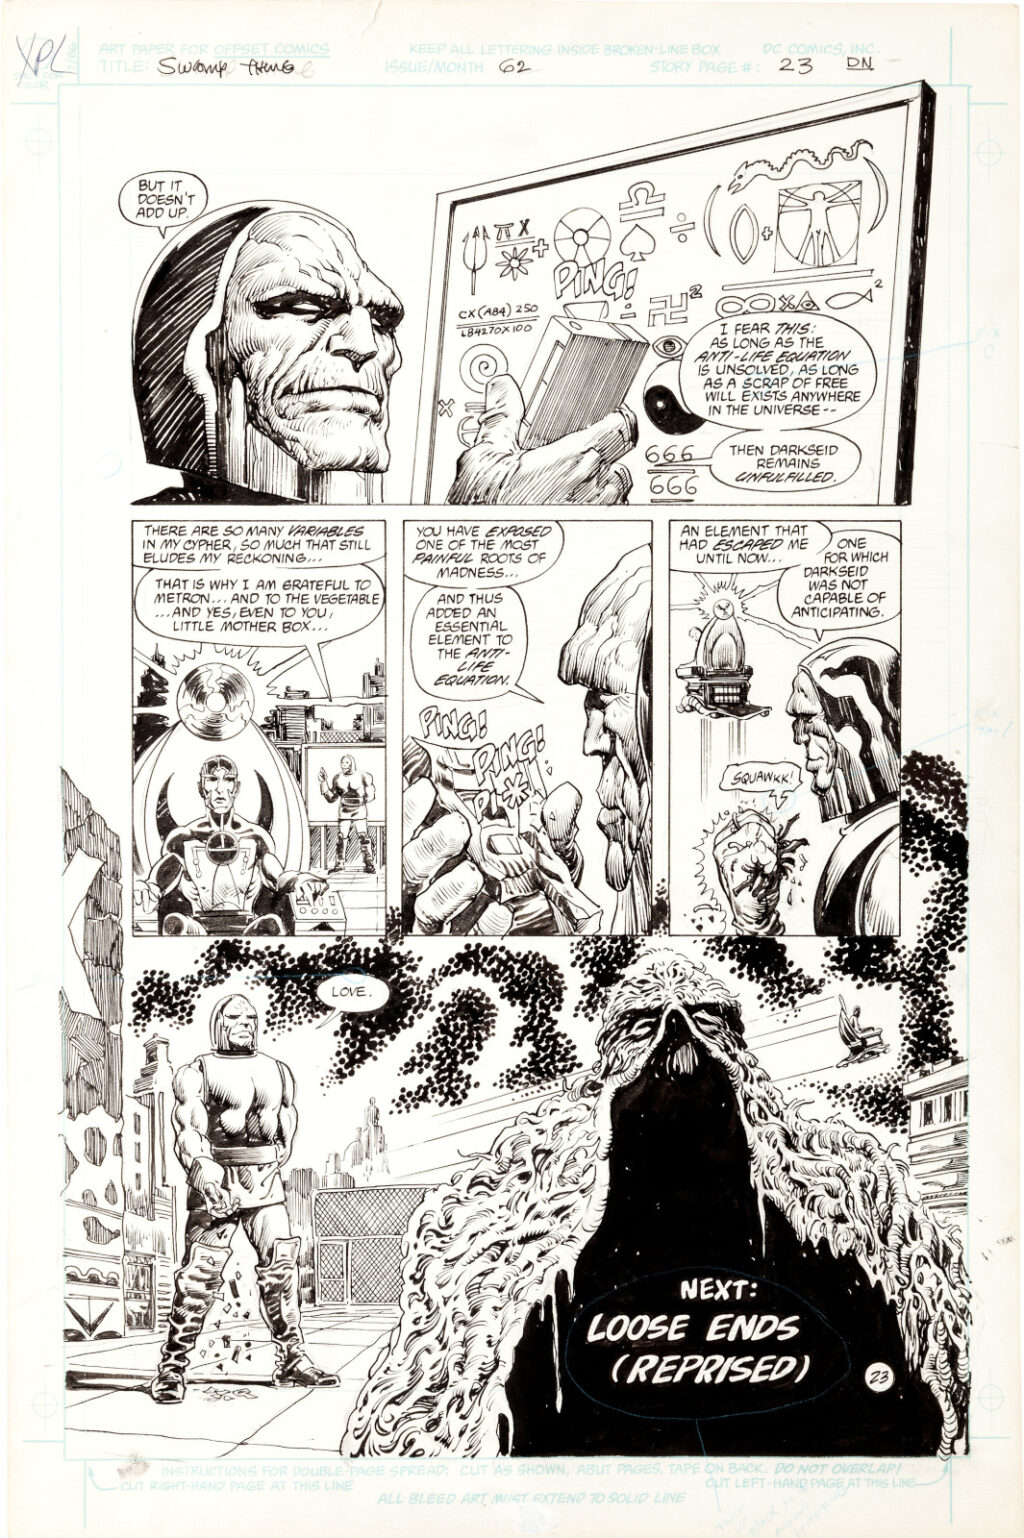 Swamp Thing issue 62 Pages 23 by Rick Veitch and Alfredo Alcala